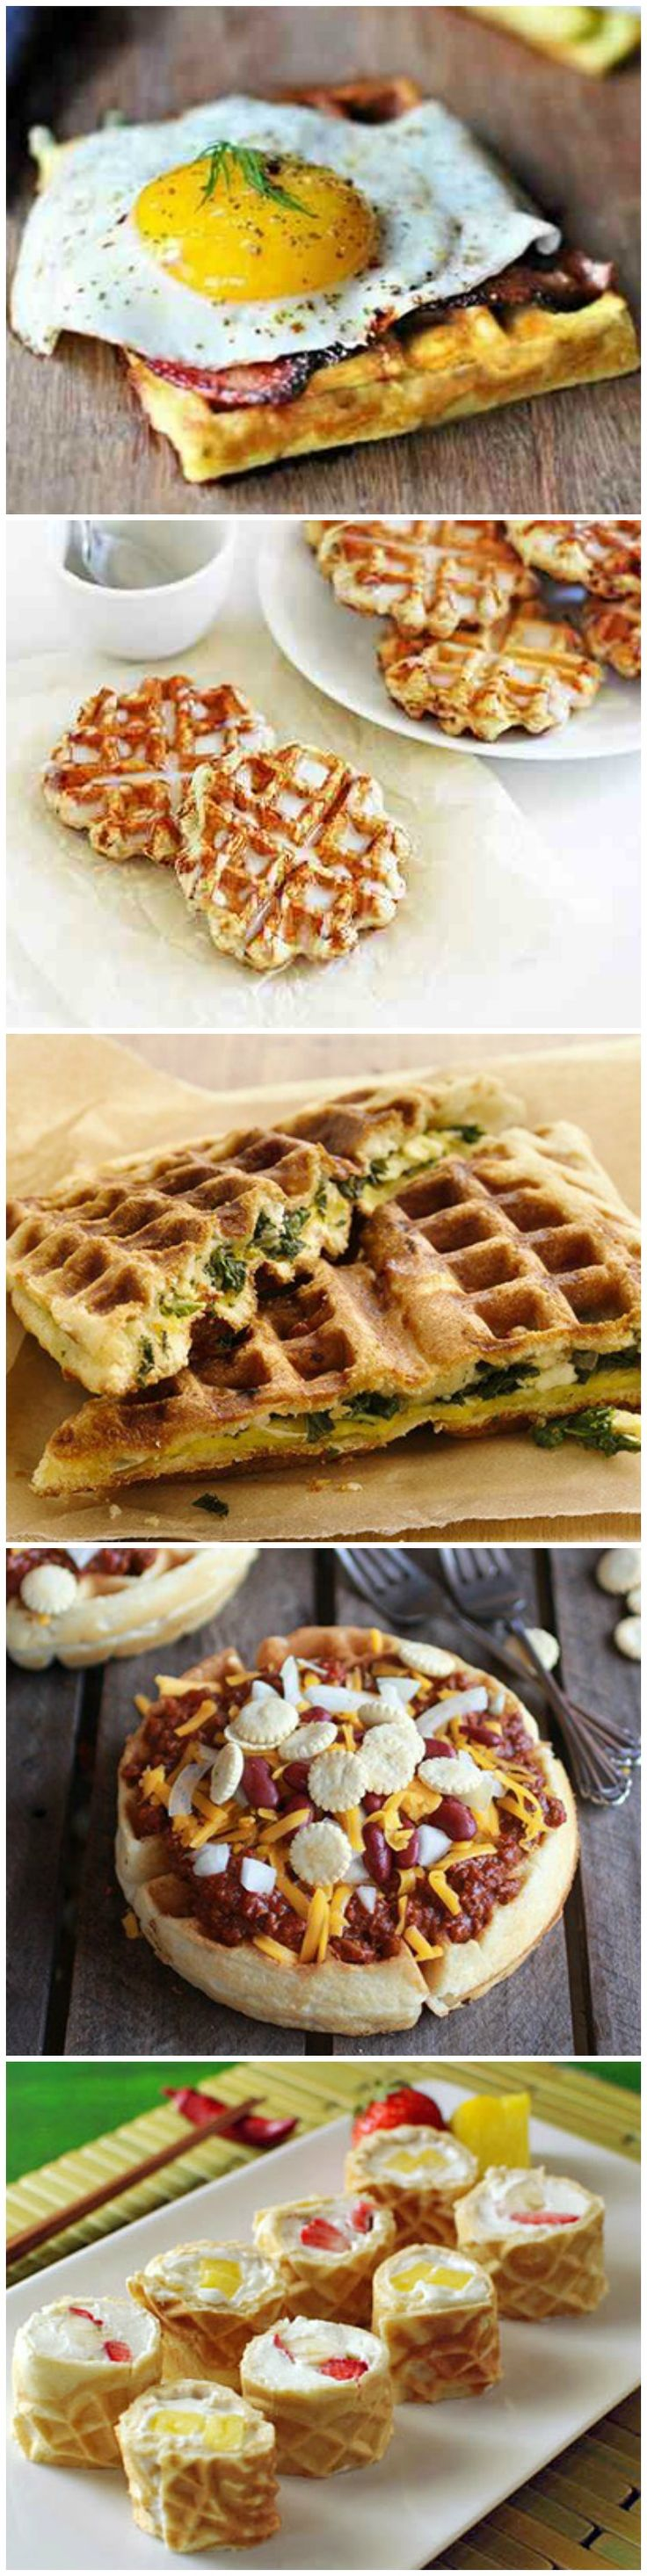 OMG - You Need to Try This w/ Your Waffle Iron!